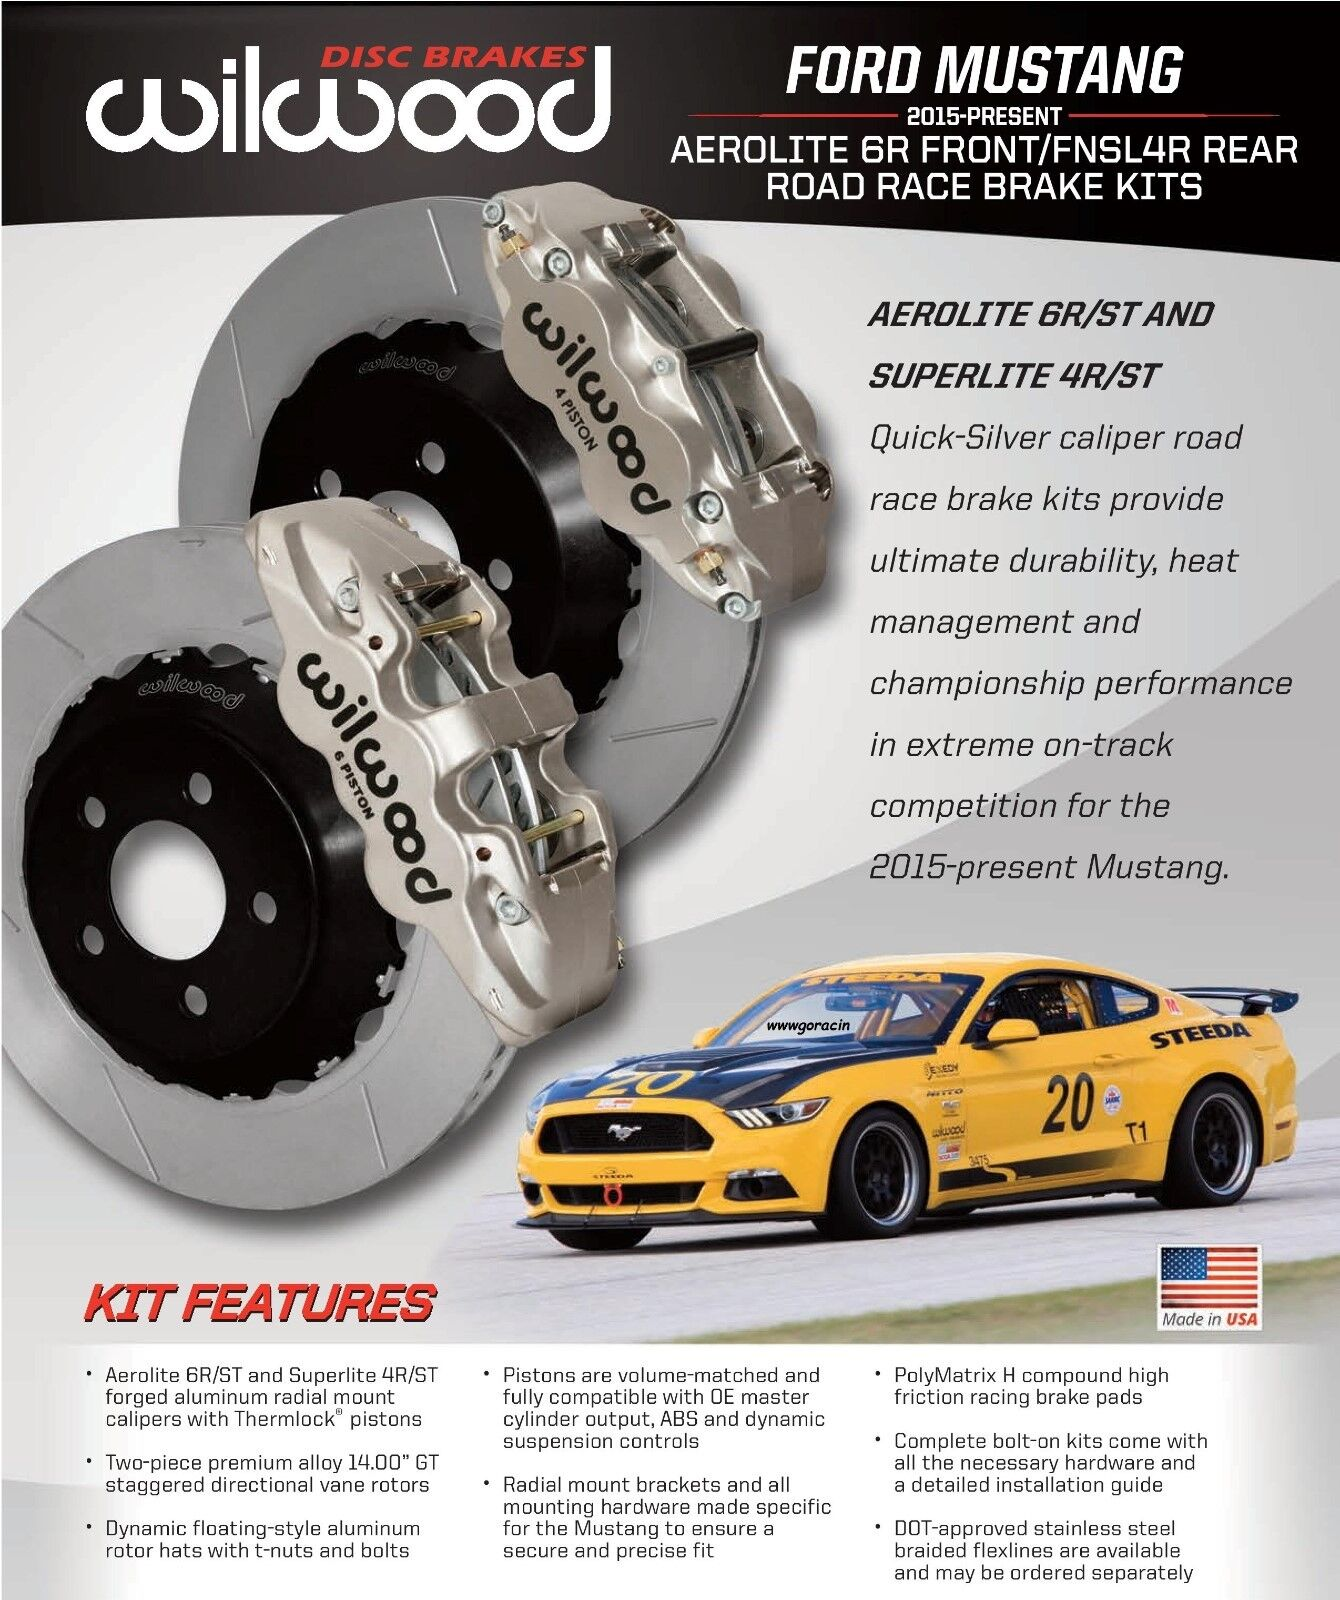 Wilwood Front & Rear Road Race Brake Kit - 2015-18 Ford Mustang,GT-GT350,SCCA'